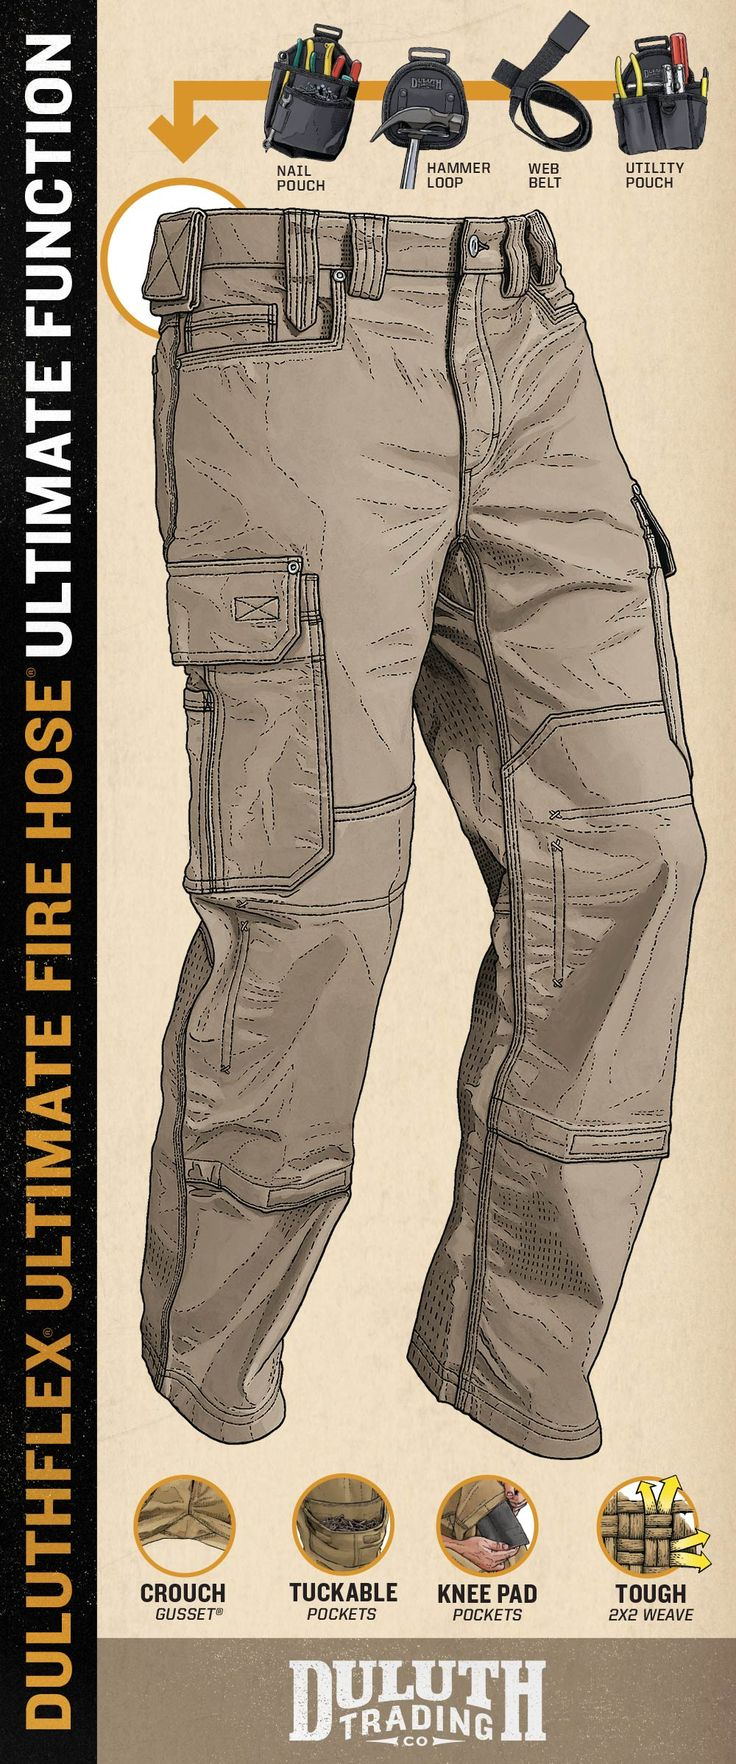 Side tabs for hammers, tape or a knife. Knee pad pouches. Hammer loops. 13 pockets. Ultimate Fire Hose Work Pants have so much storage, they're a wearable toolbox. Even the pockets have pockets! Could you possibly have more in your pants? We don't think so.